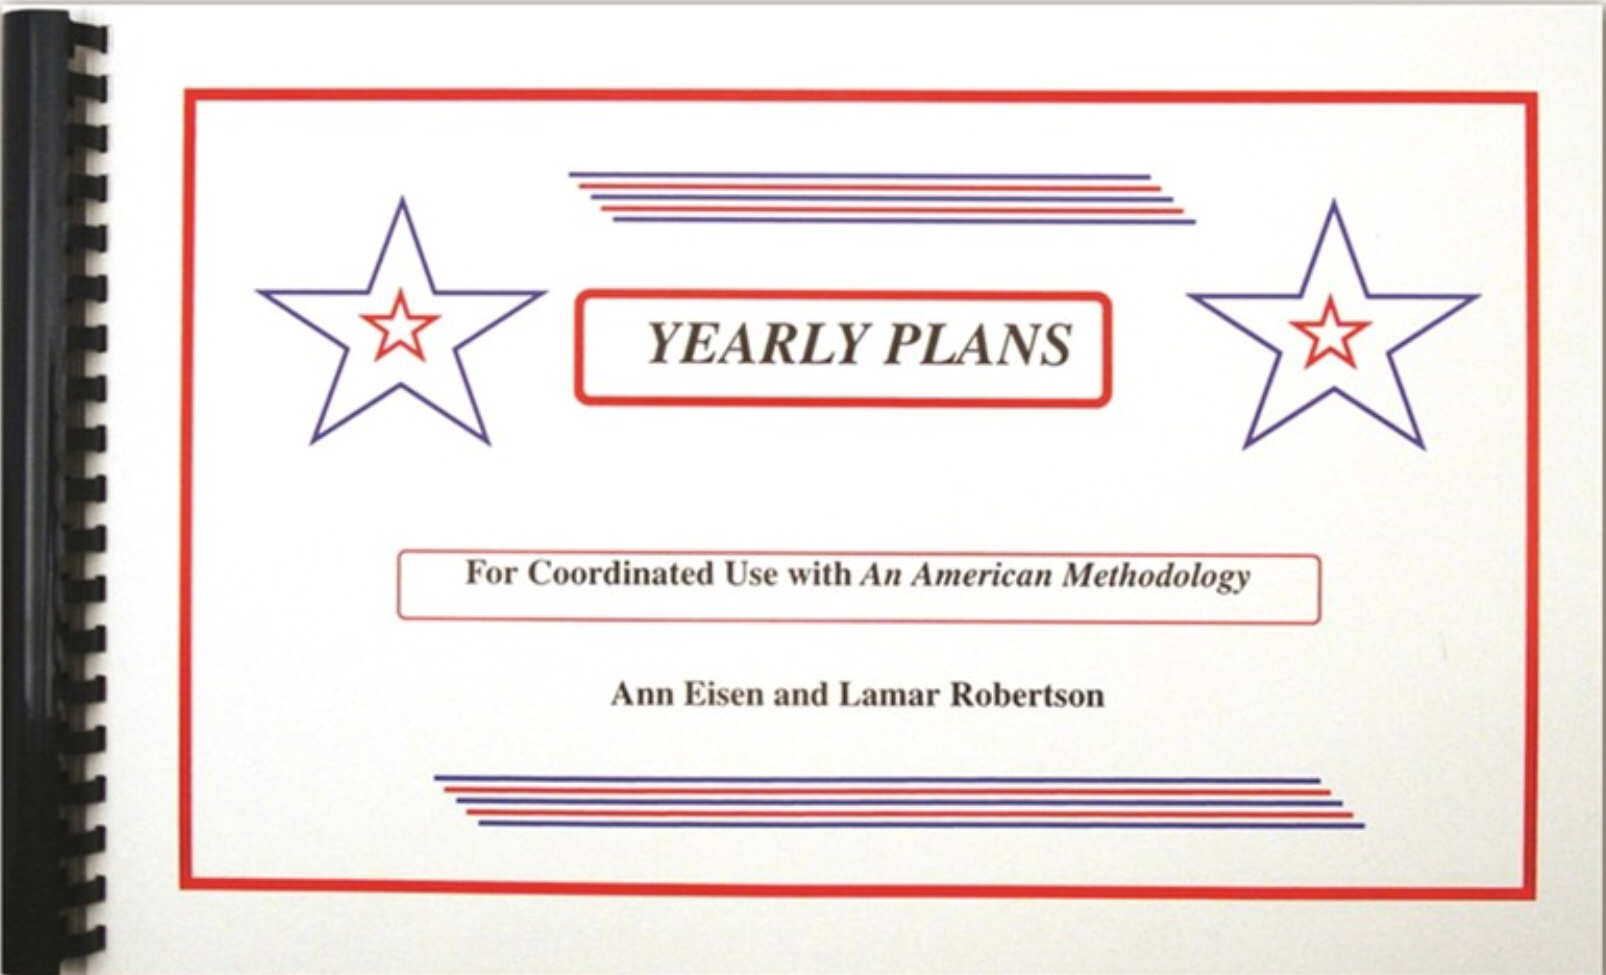 Yearly Plans by Eisen and Robertson